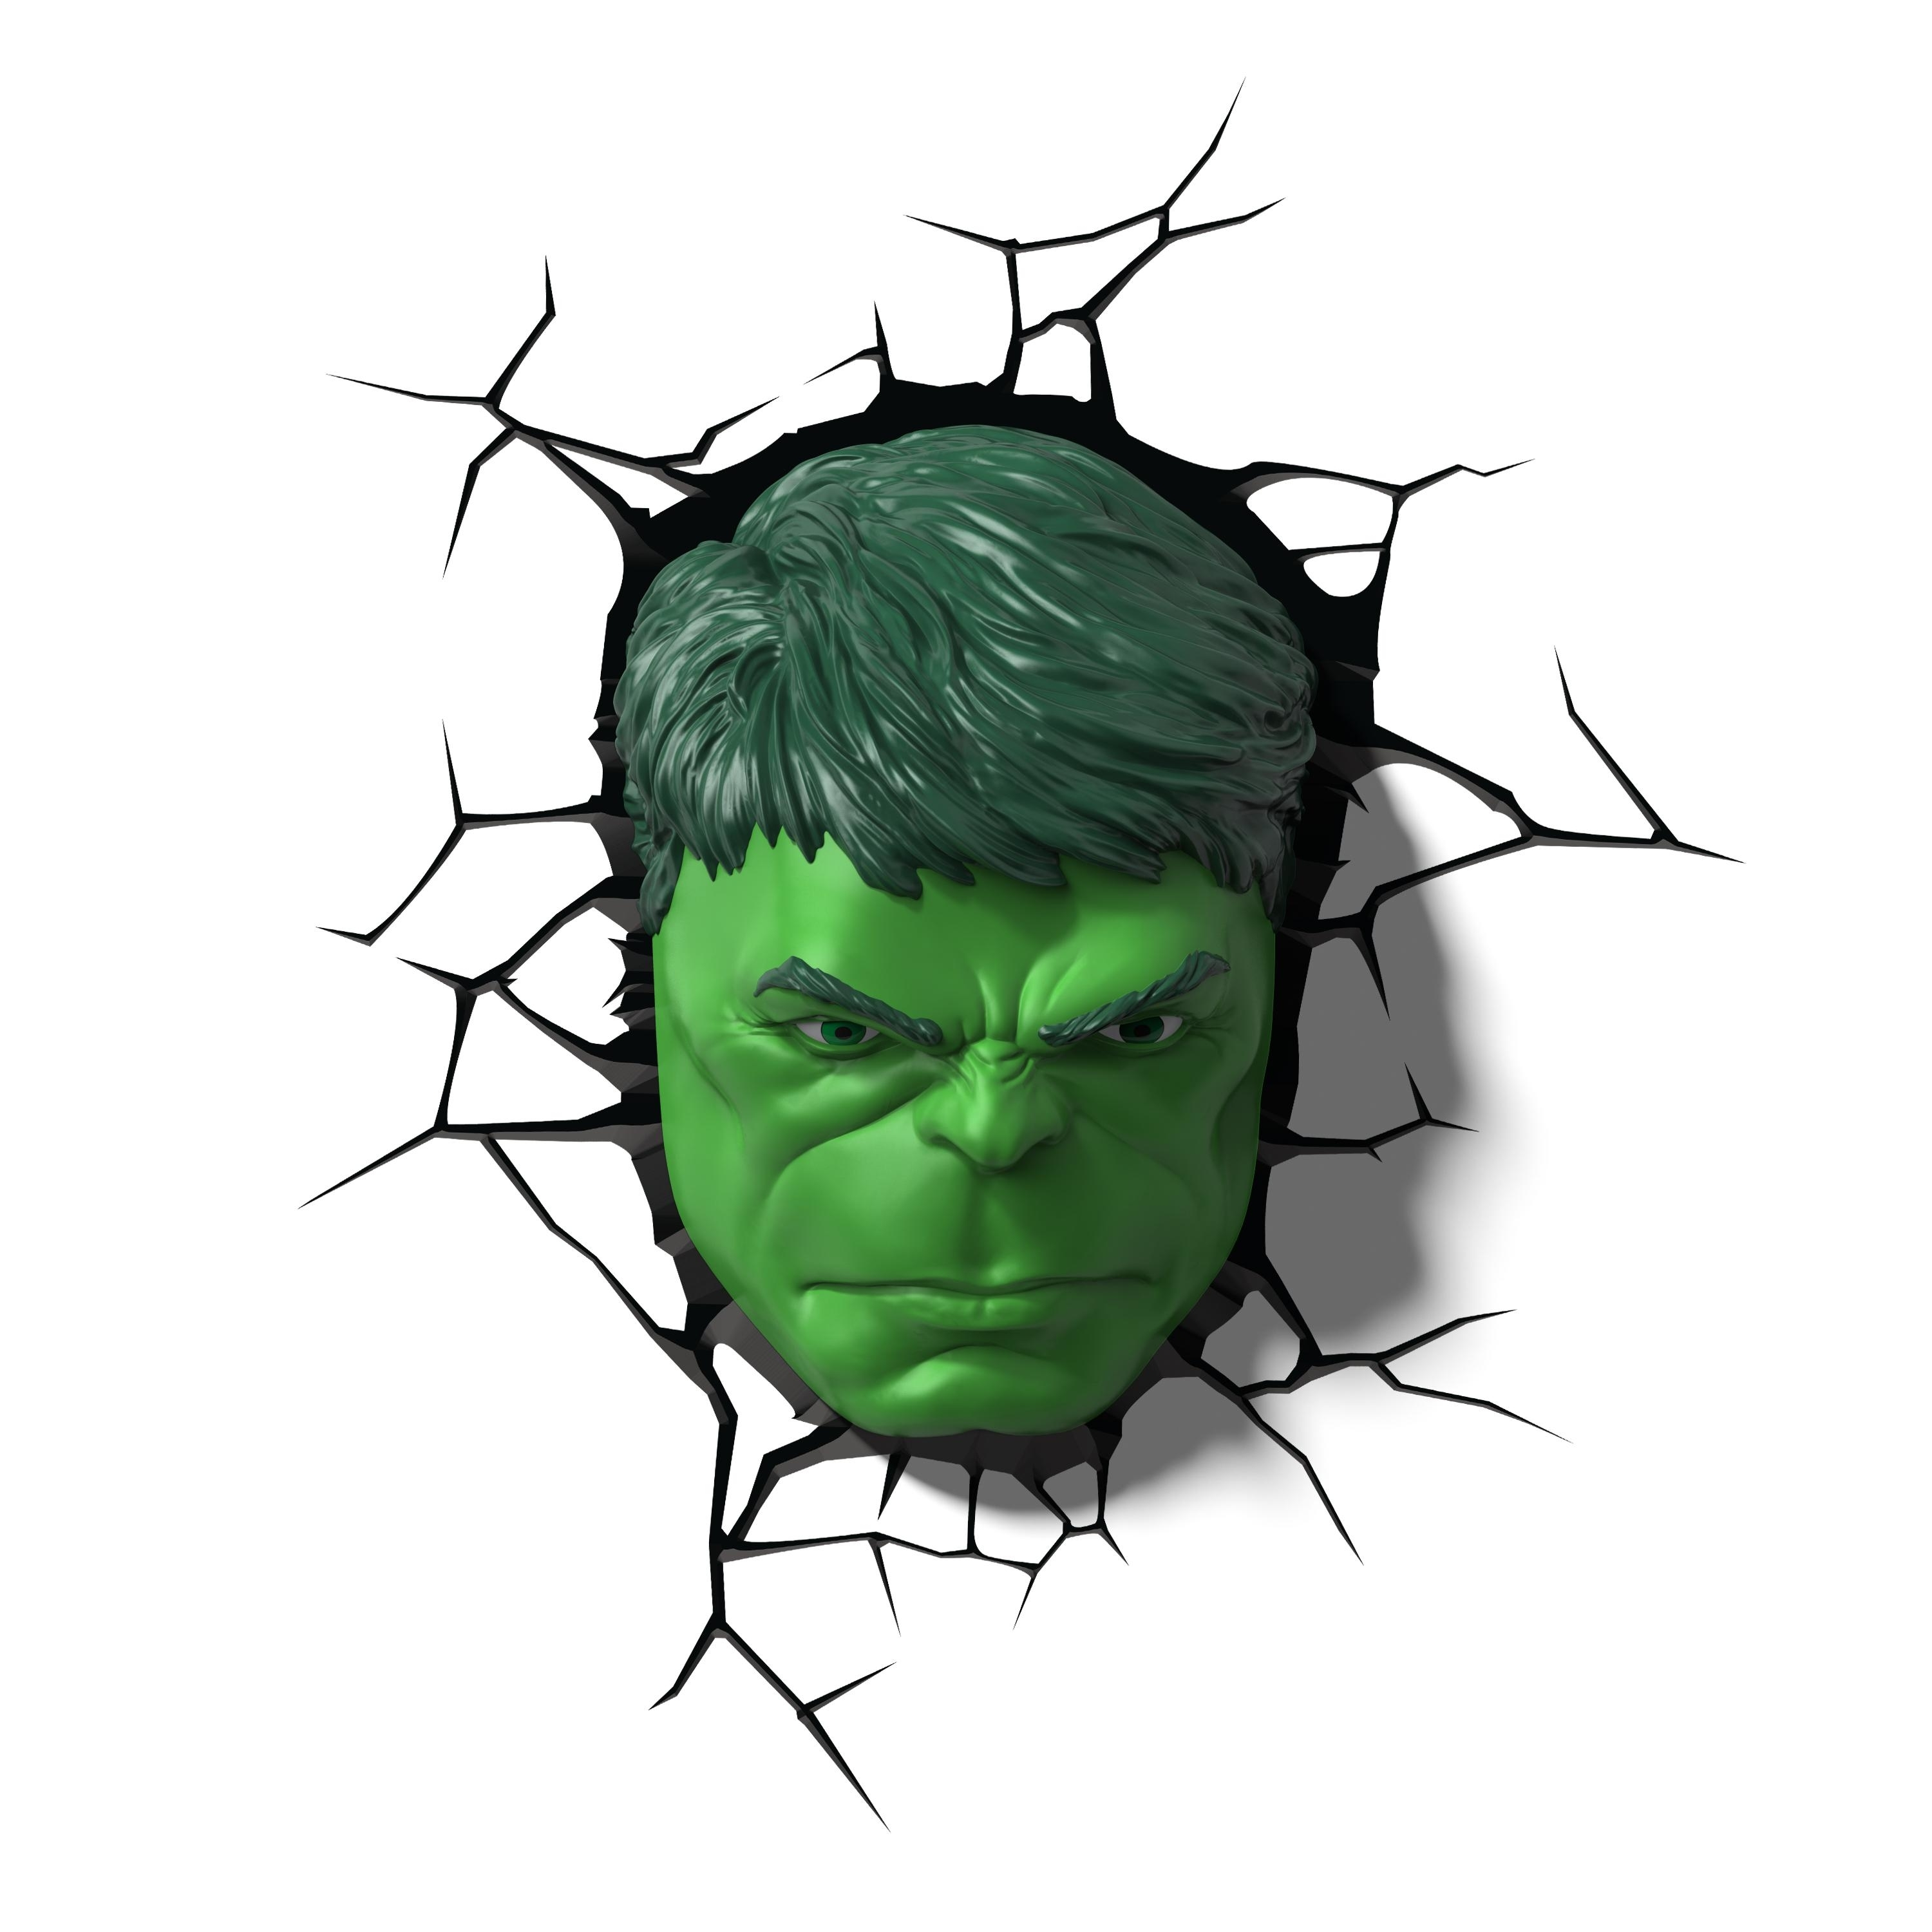 Amazon: 3Dlightfx Marvel Avengers Hulk Face 3D Deco Light With Current Hulk Hand 3D Wall Art (View 2 of 15)